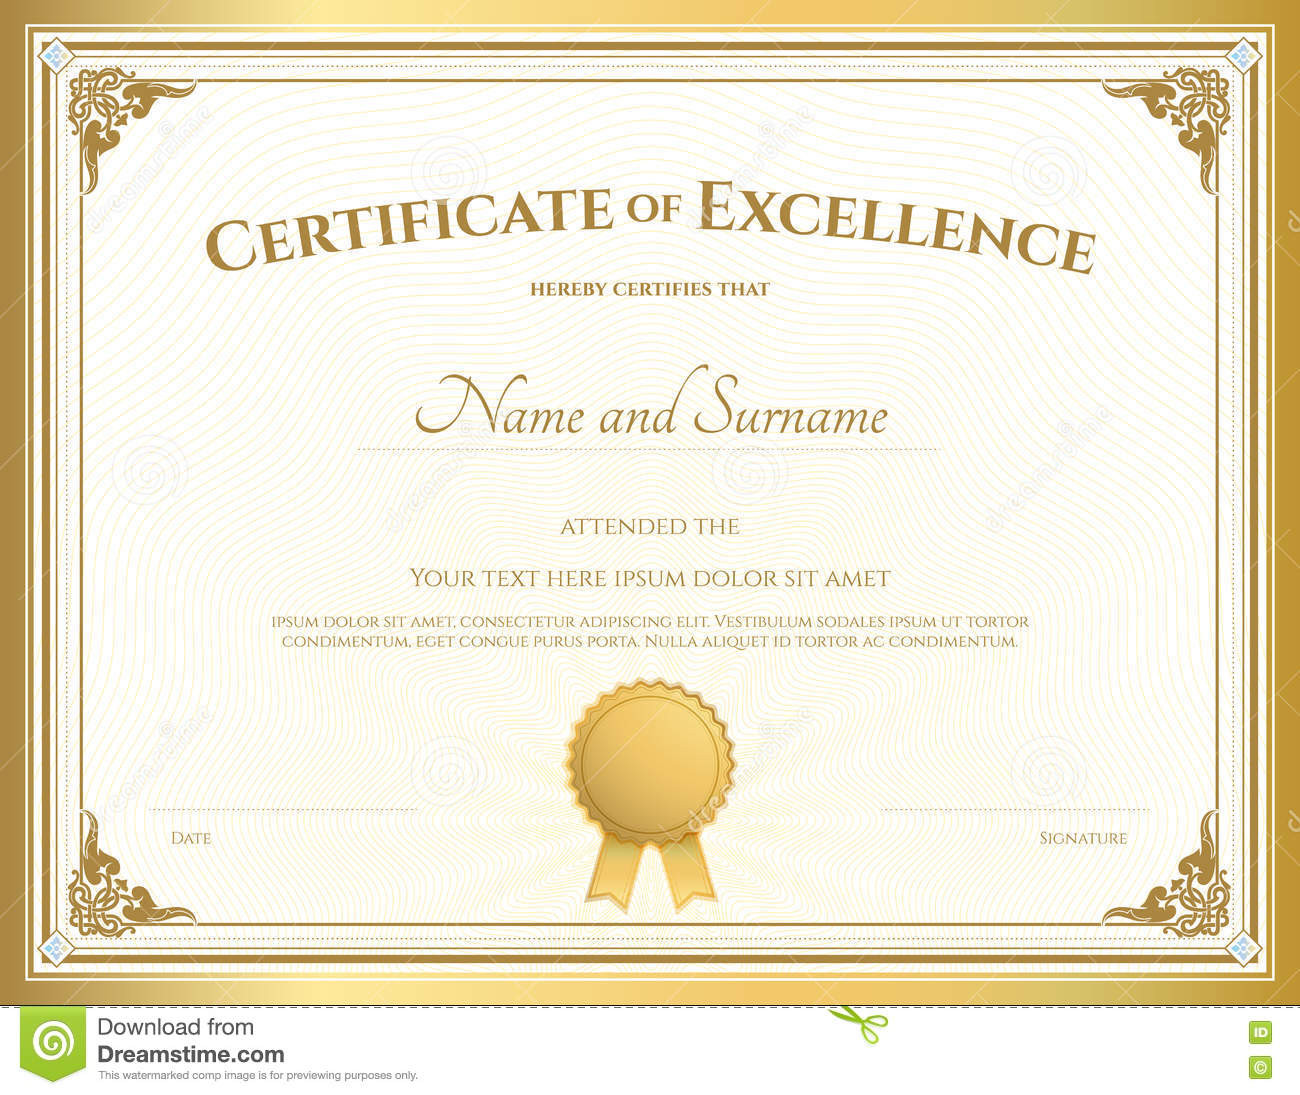 Certificate Of Excellence Stock Images - Image: 14177114